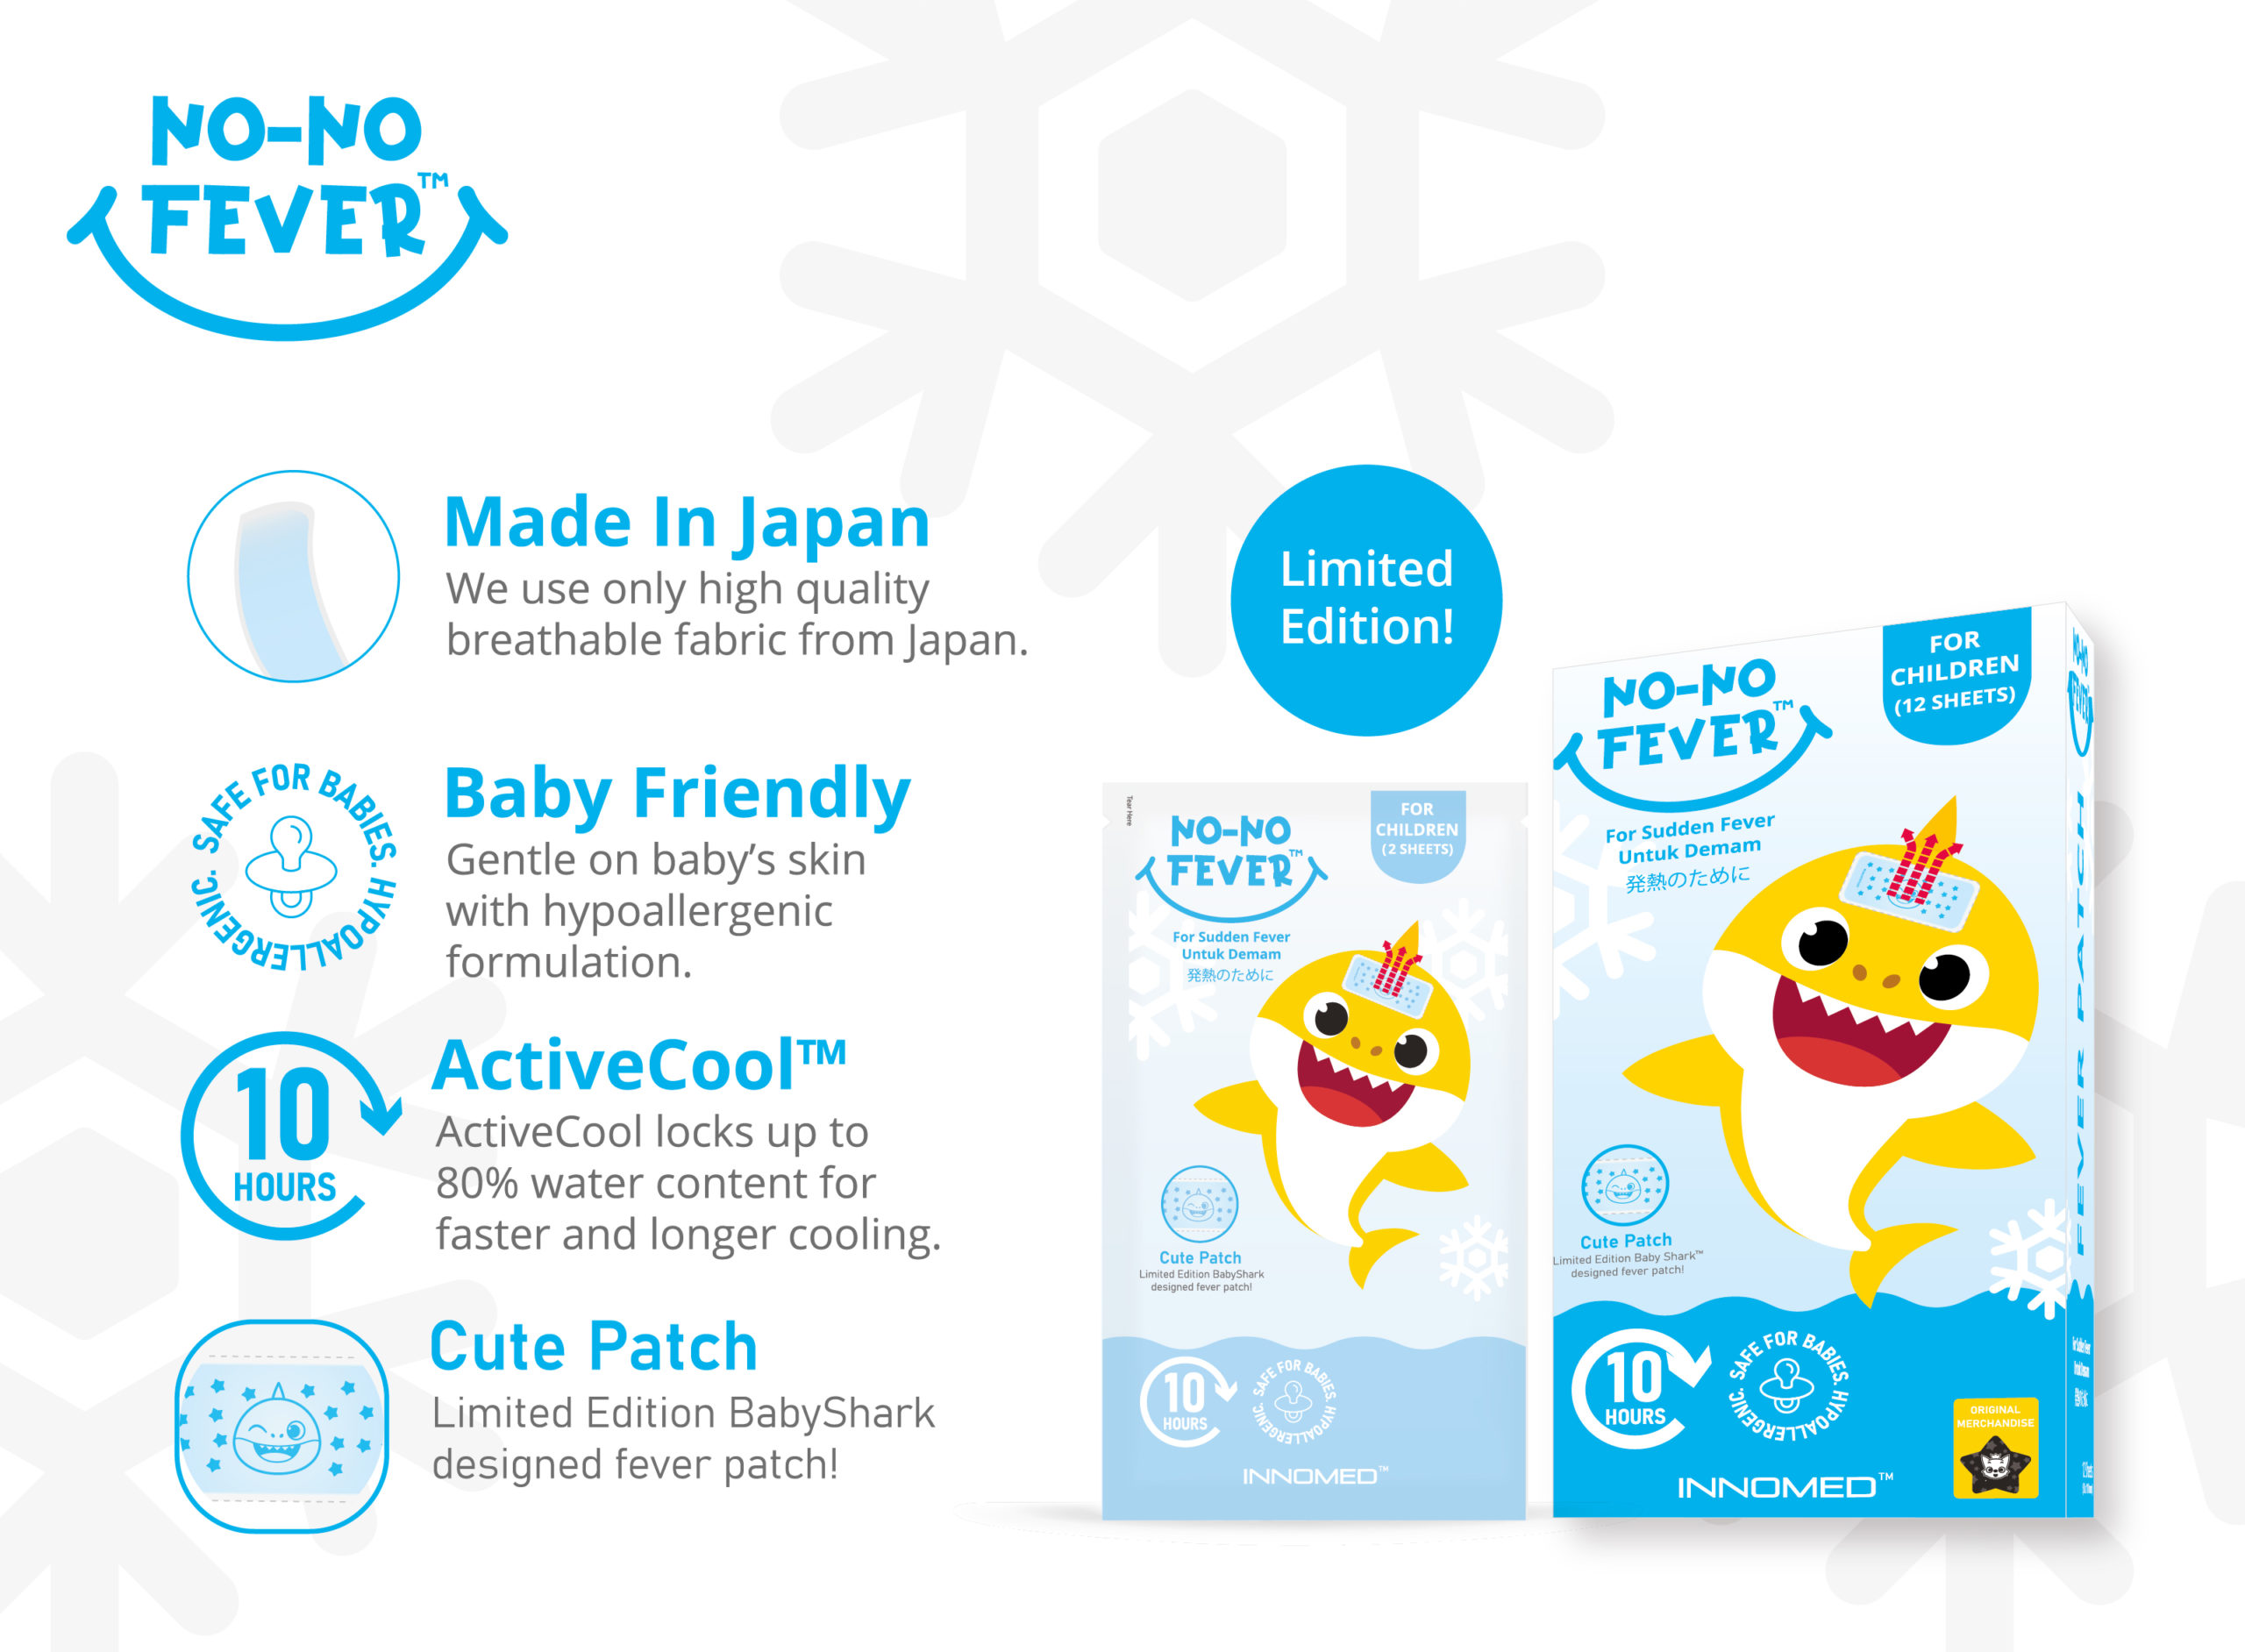 https://www.alpropharmacy.com/oneclick/product/innomed-nono-fever-patch-children-6x2s/